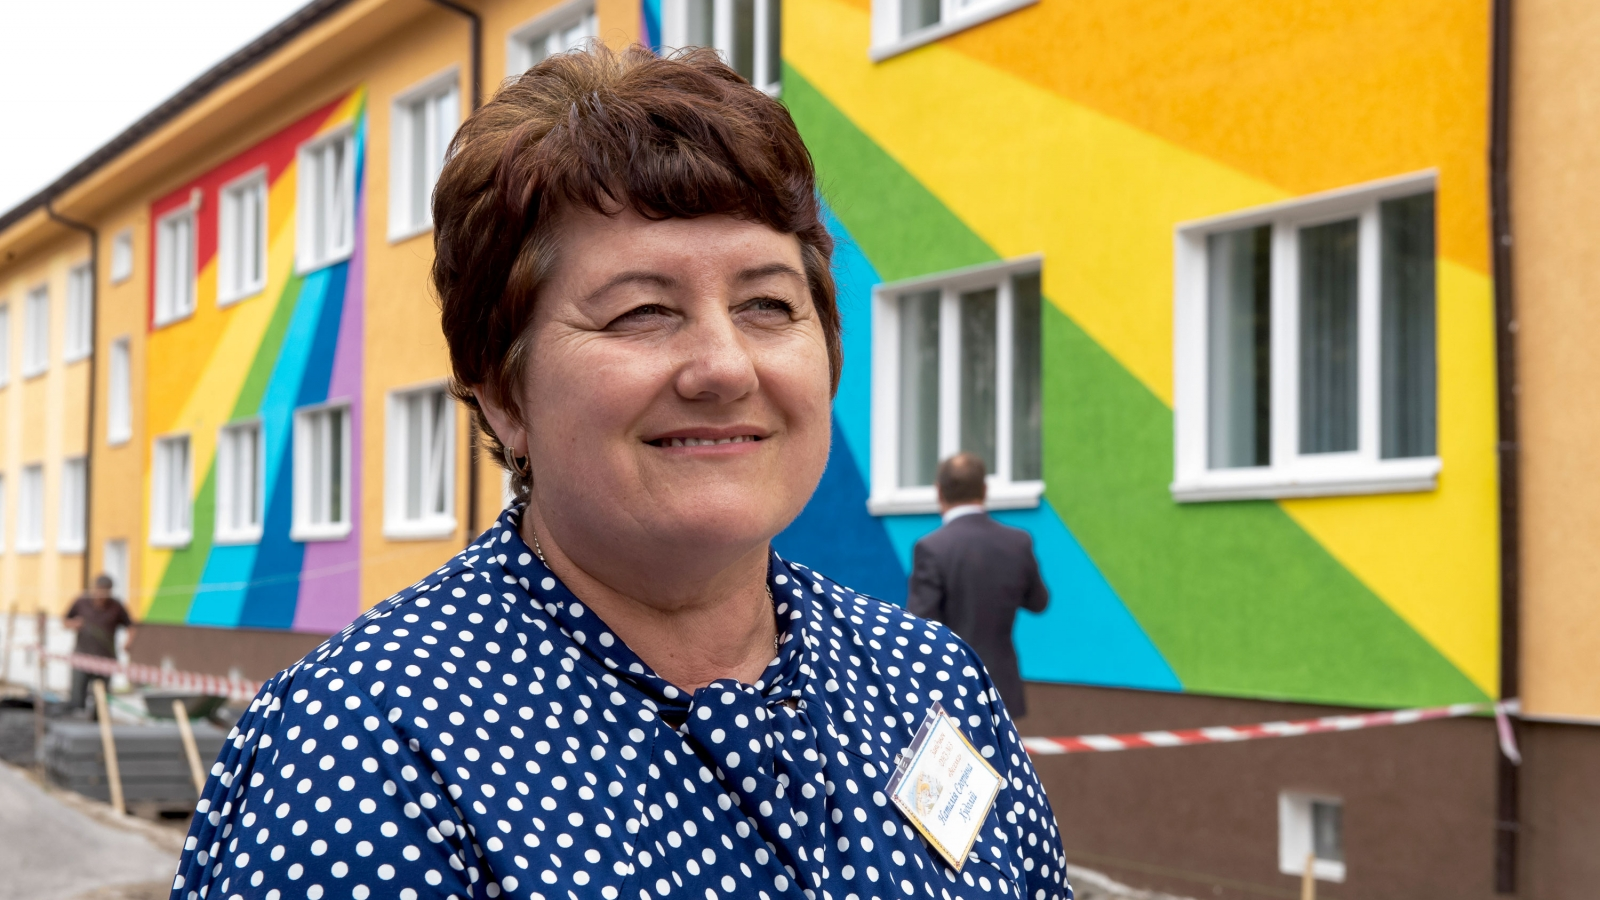 Nataliya Khudoliy, director of Kindergarten No. 3